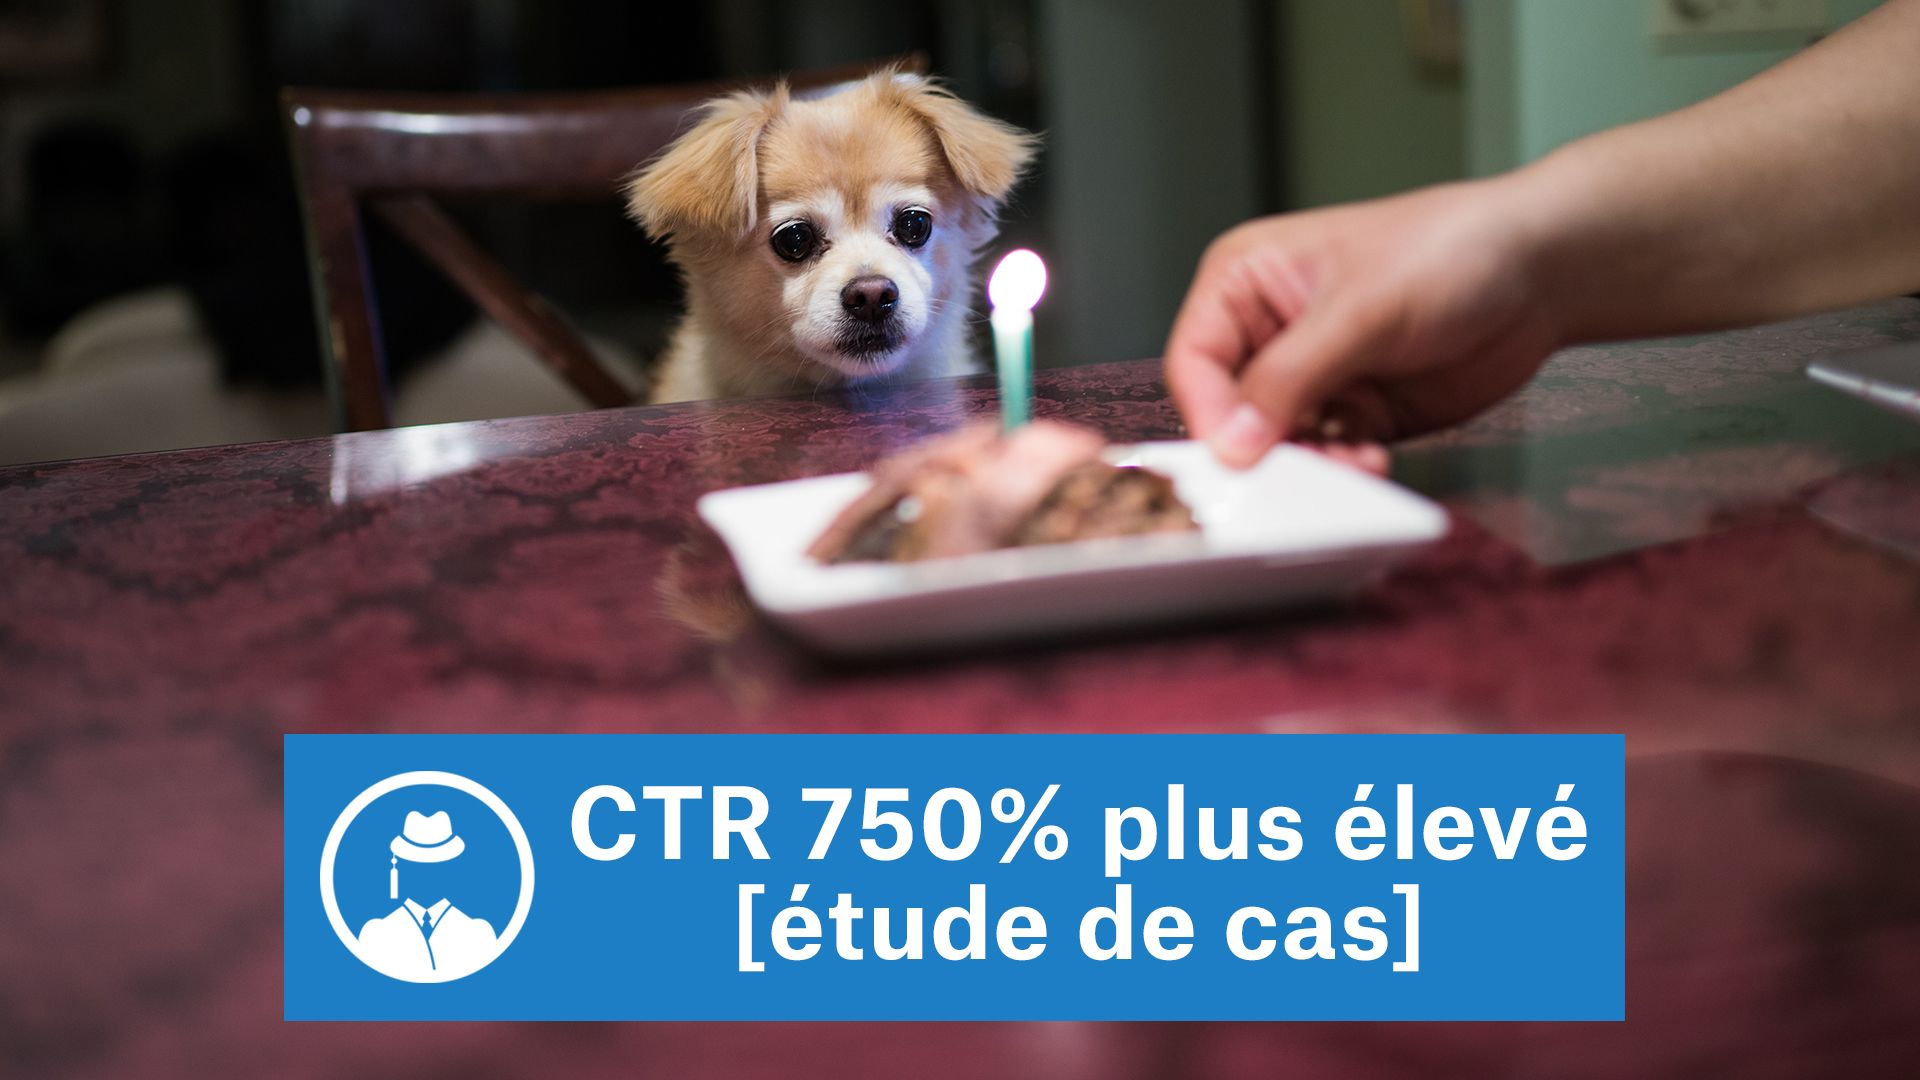 CTR 750% plus élevé [étude de cas] #GrowthHacking #WebMarketing #FormationGrowthHacking #CentreDeFormationFrance #TunnelAARRR #AARRR #SocialMedia #CommunityManagement #SEO #MarketingDigital #SiteWeb